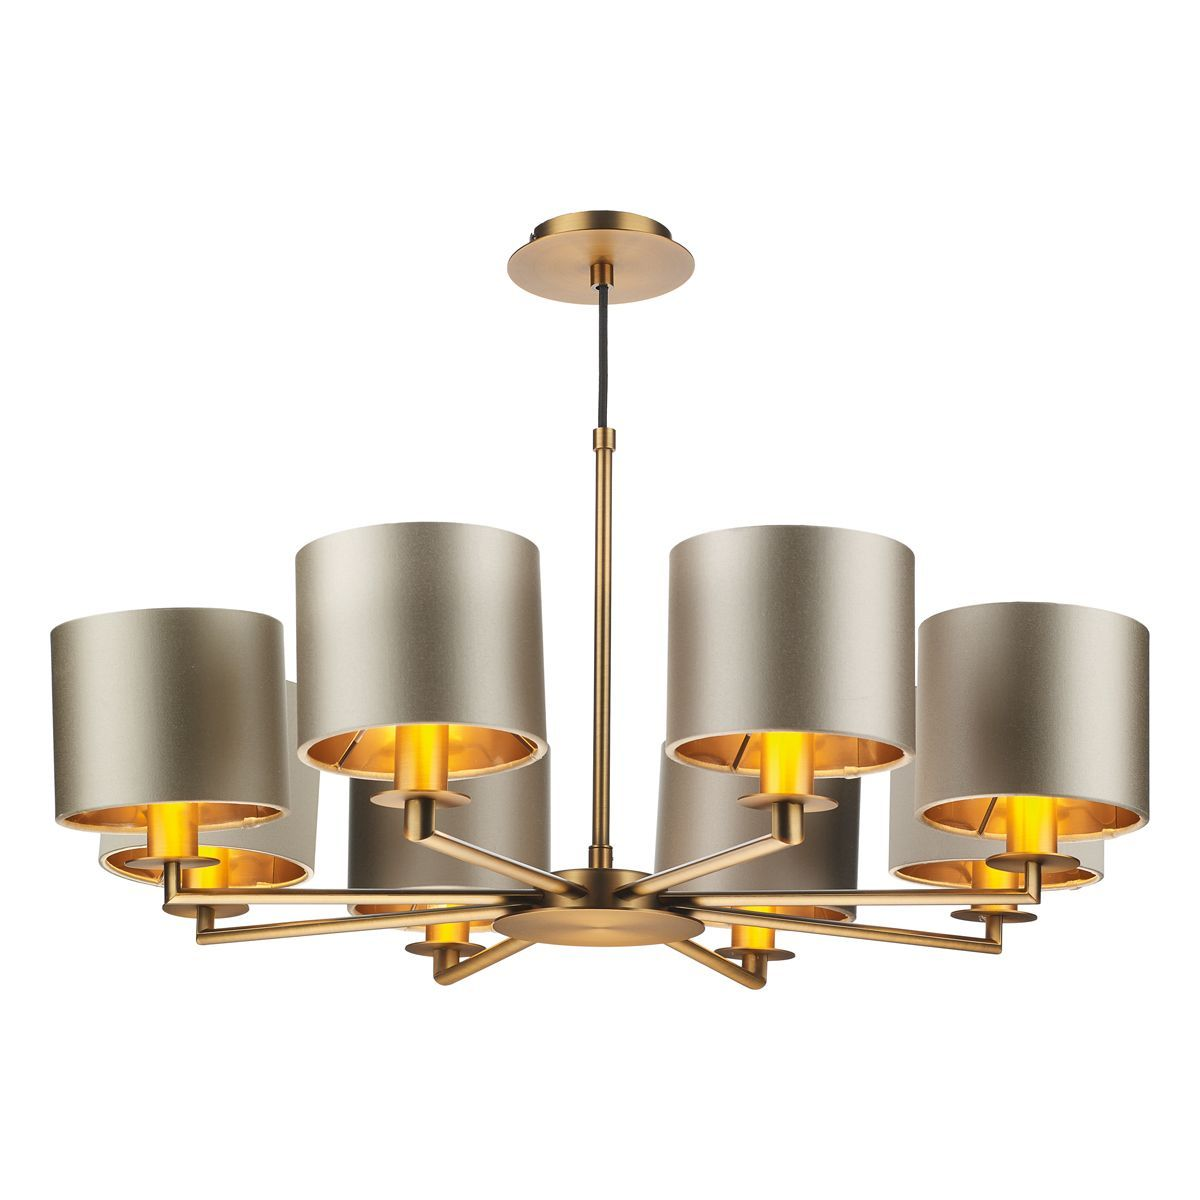 Homerton 8 Light Pendant In Bronze - ID 8683